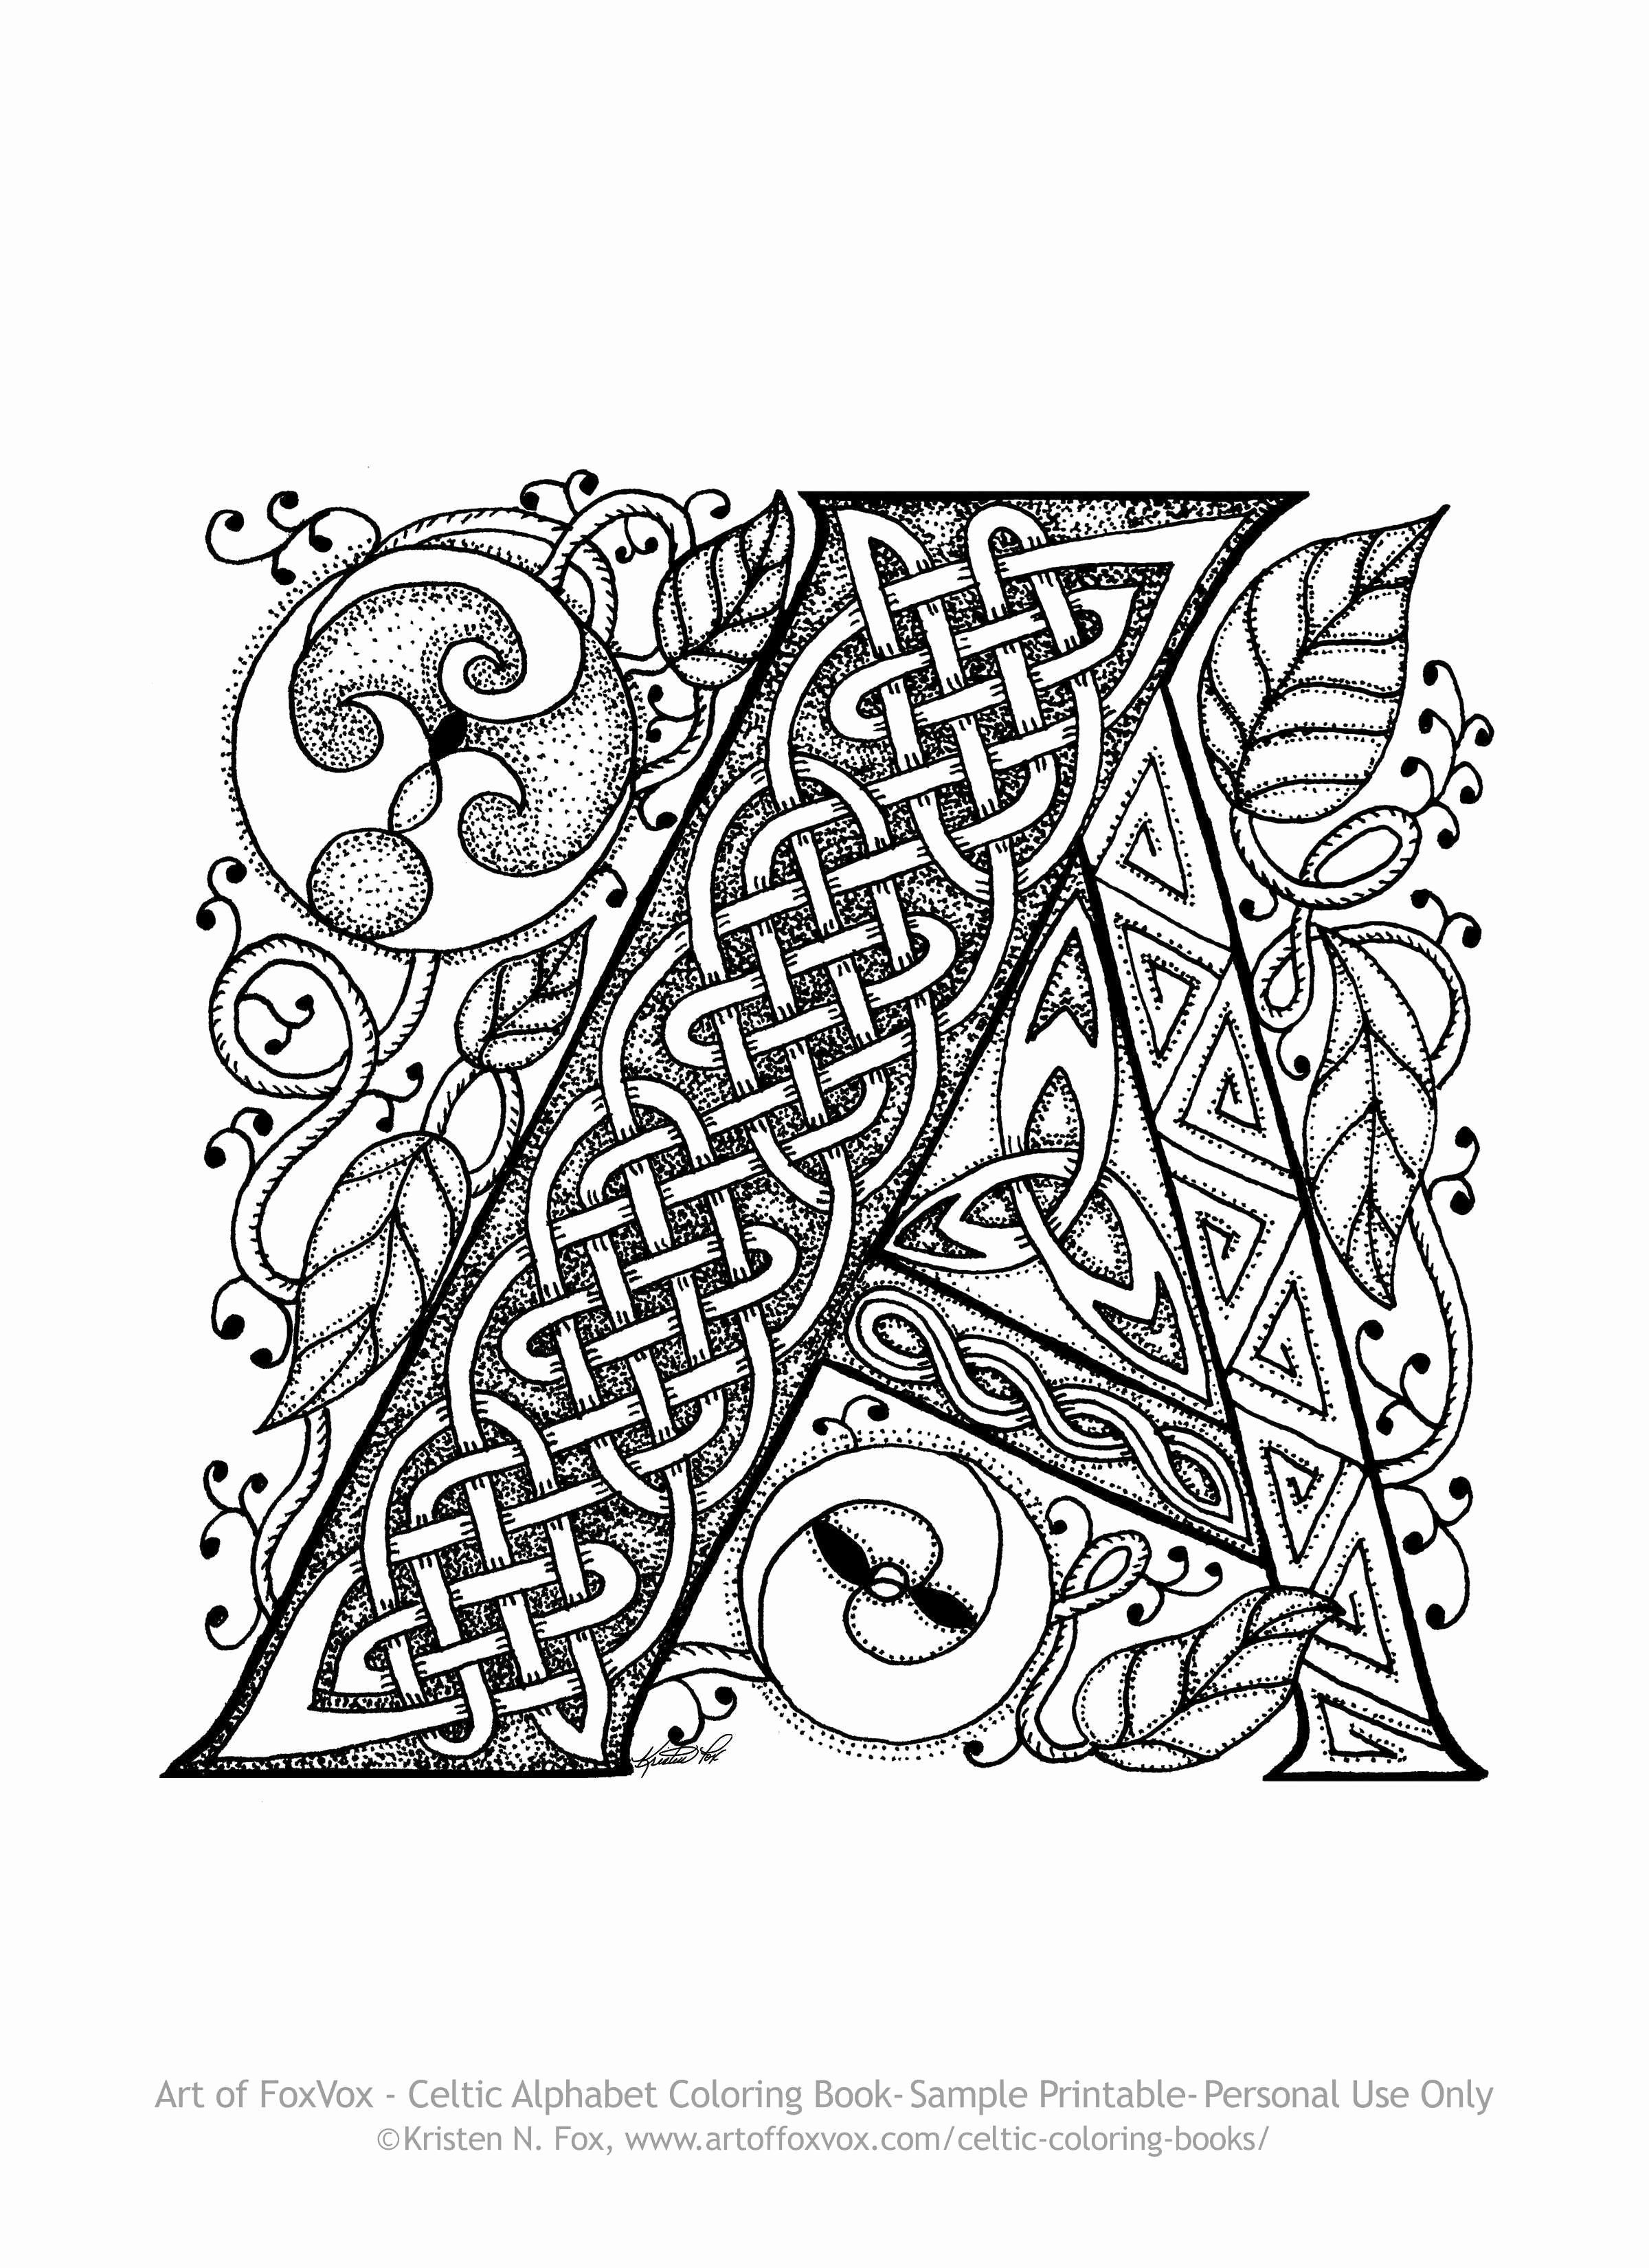 Delaware Flag Coloring Page Inspirational Delaware Flag Coloring